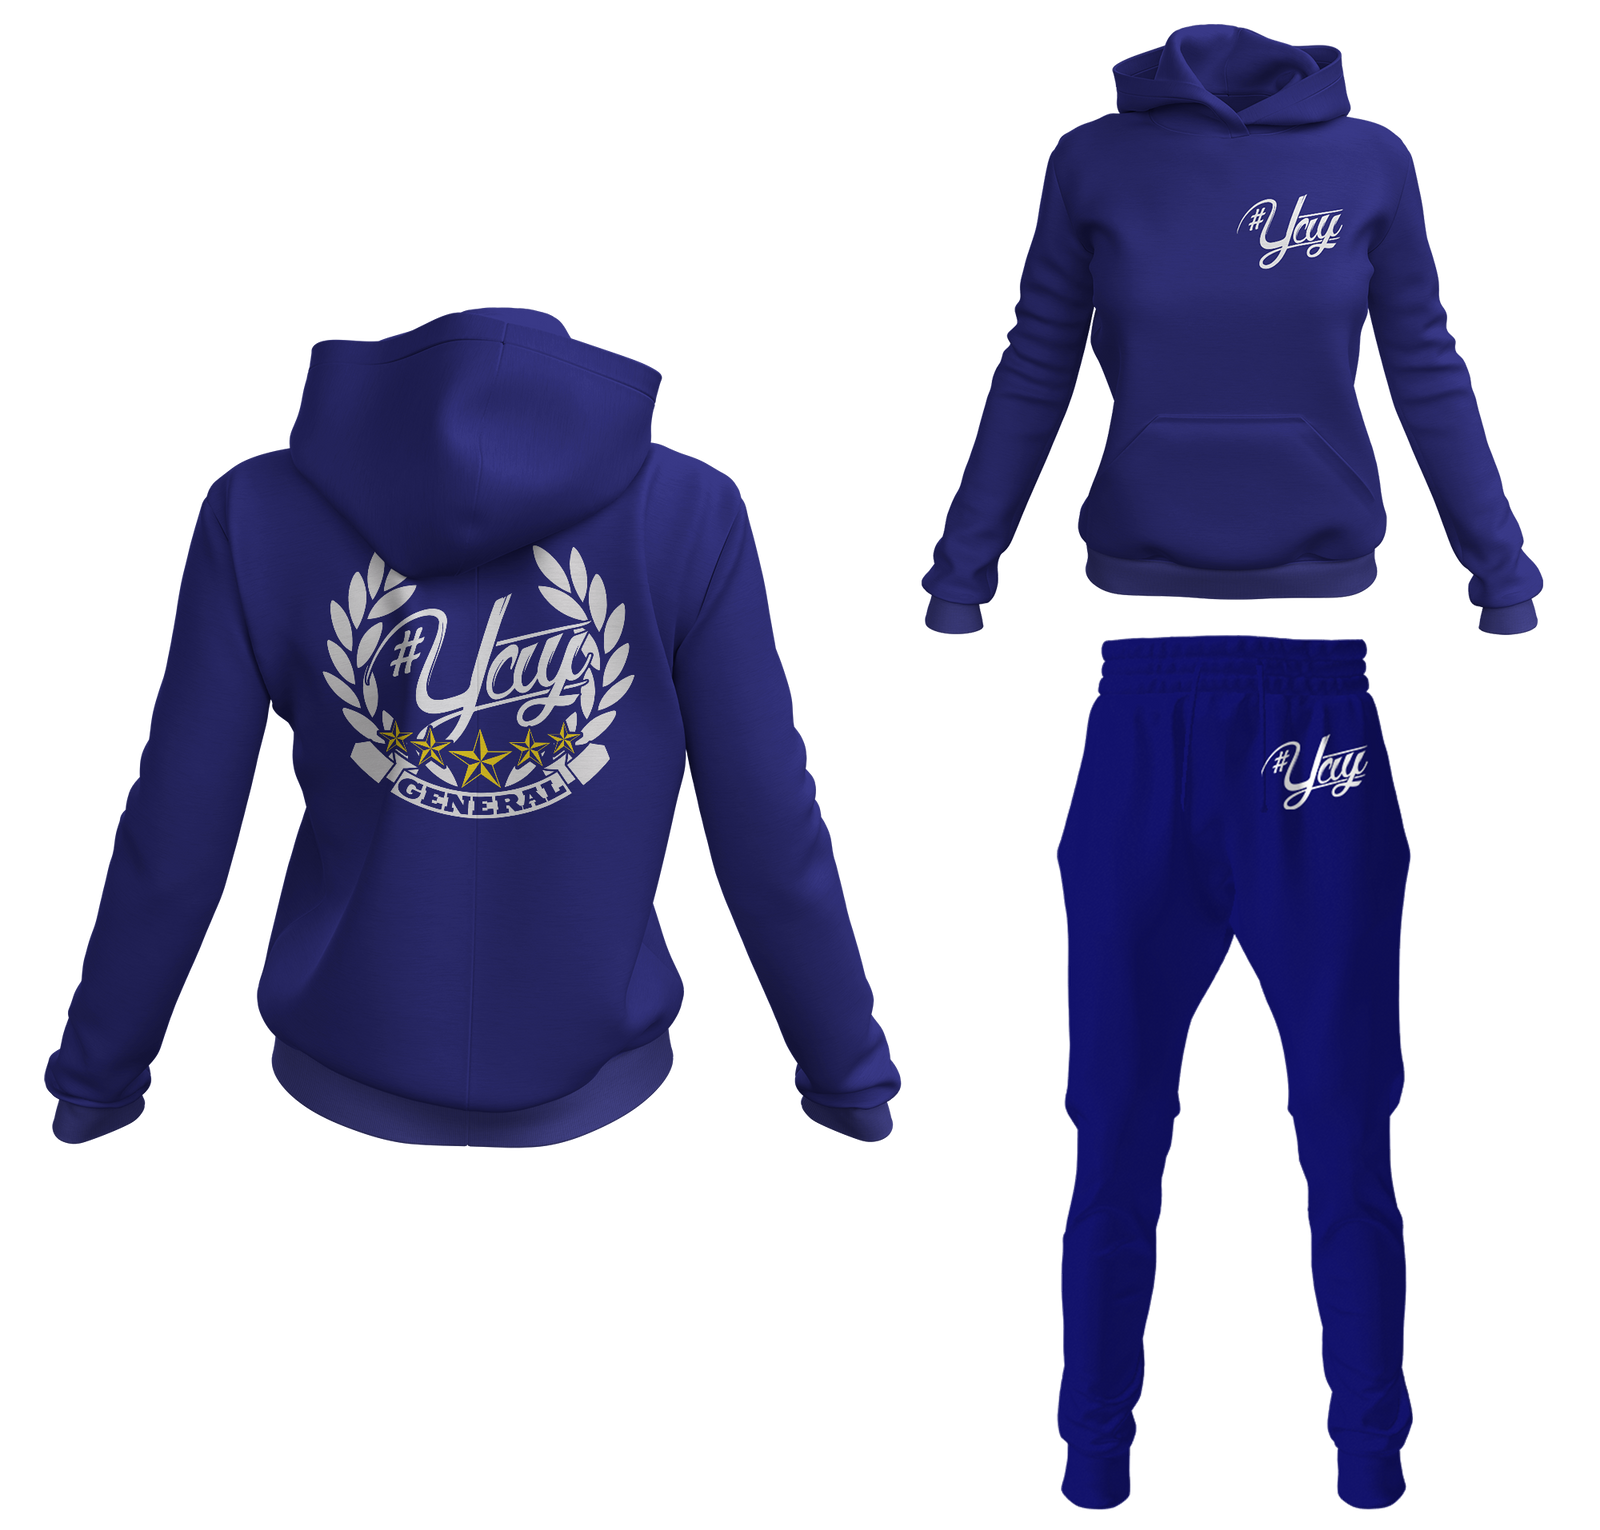 Women's General Yay Pullover Sweatsuits